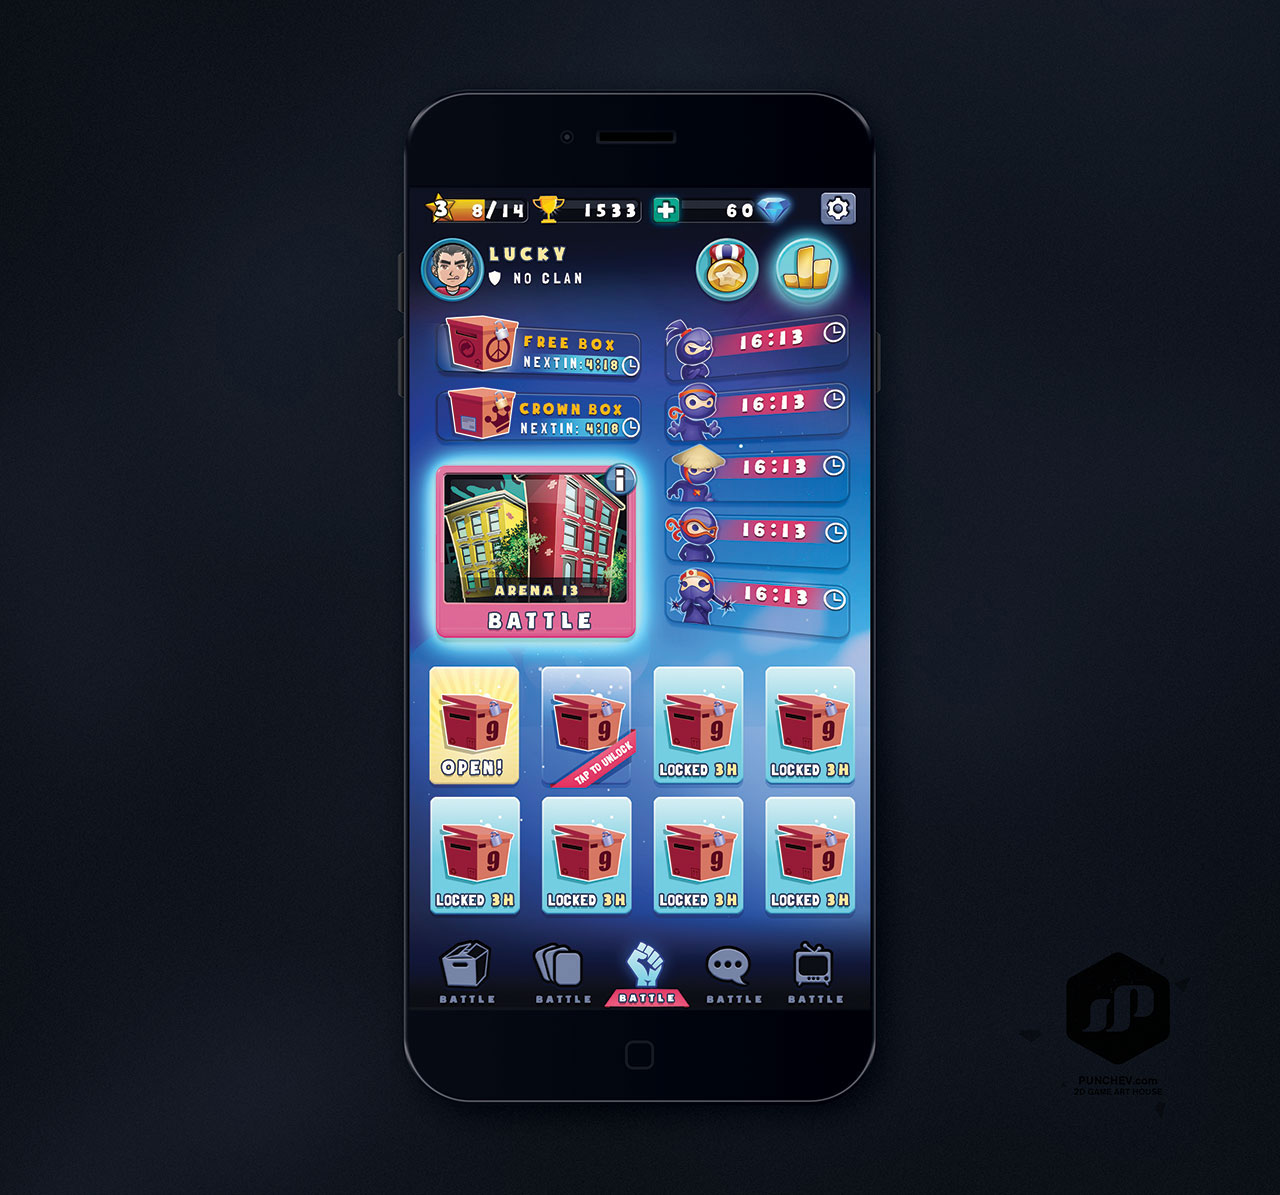 mobile-game-interface-design-ui-ux-concept-gameart-gameinterface-screen-previewA